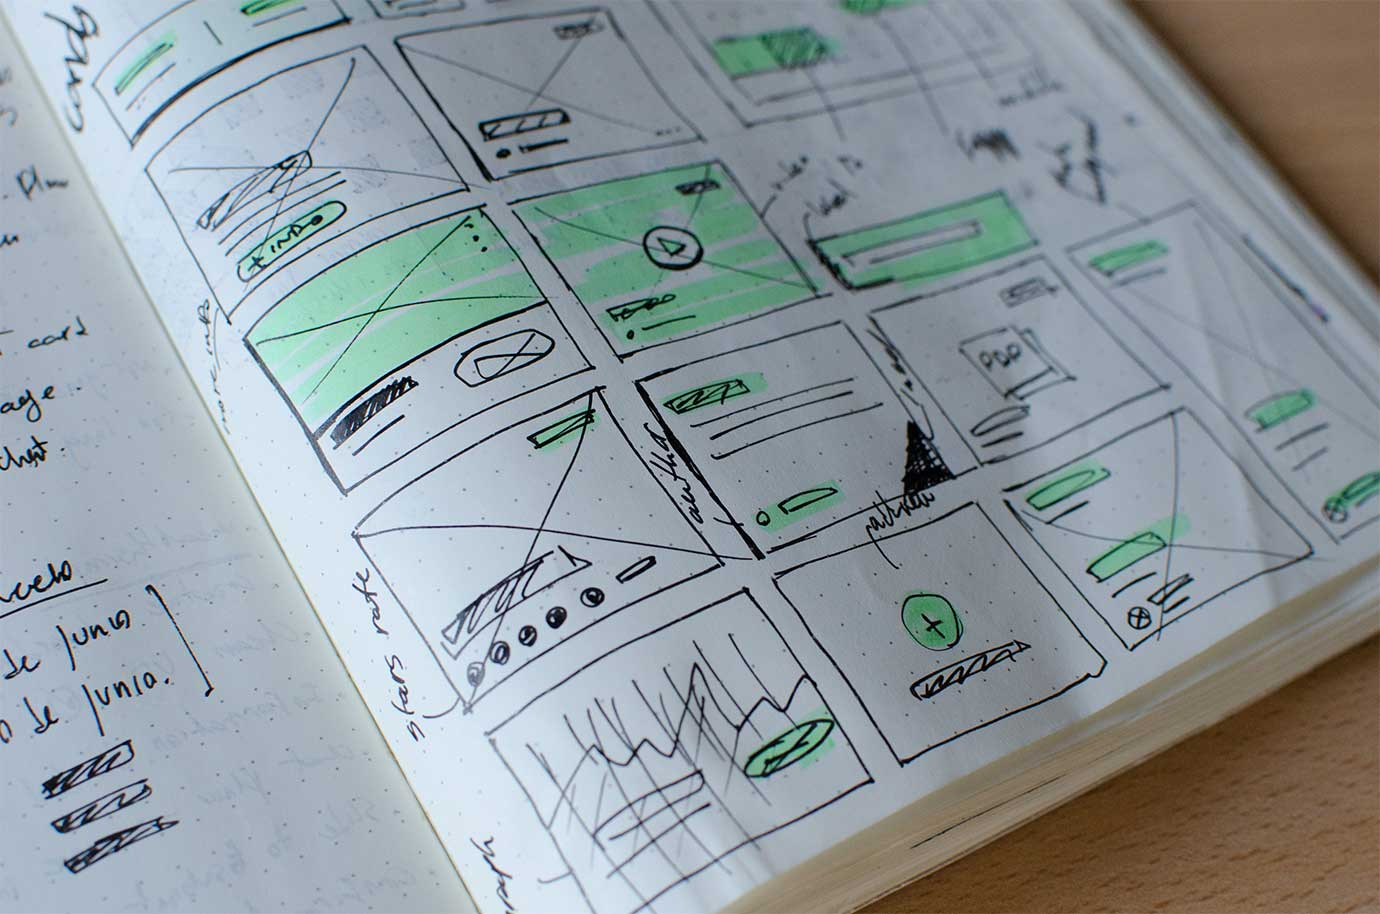 A close-up of graphics drawn in a notebook